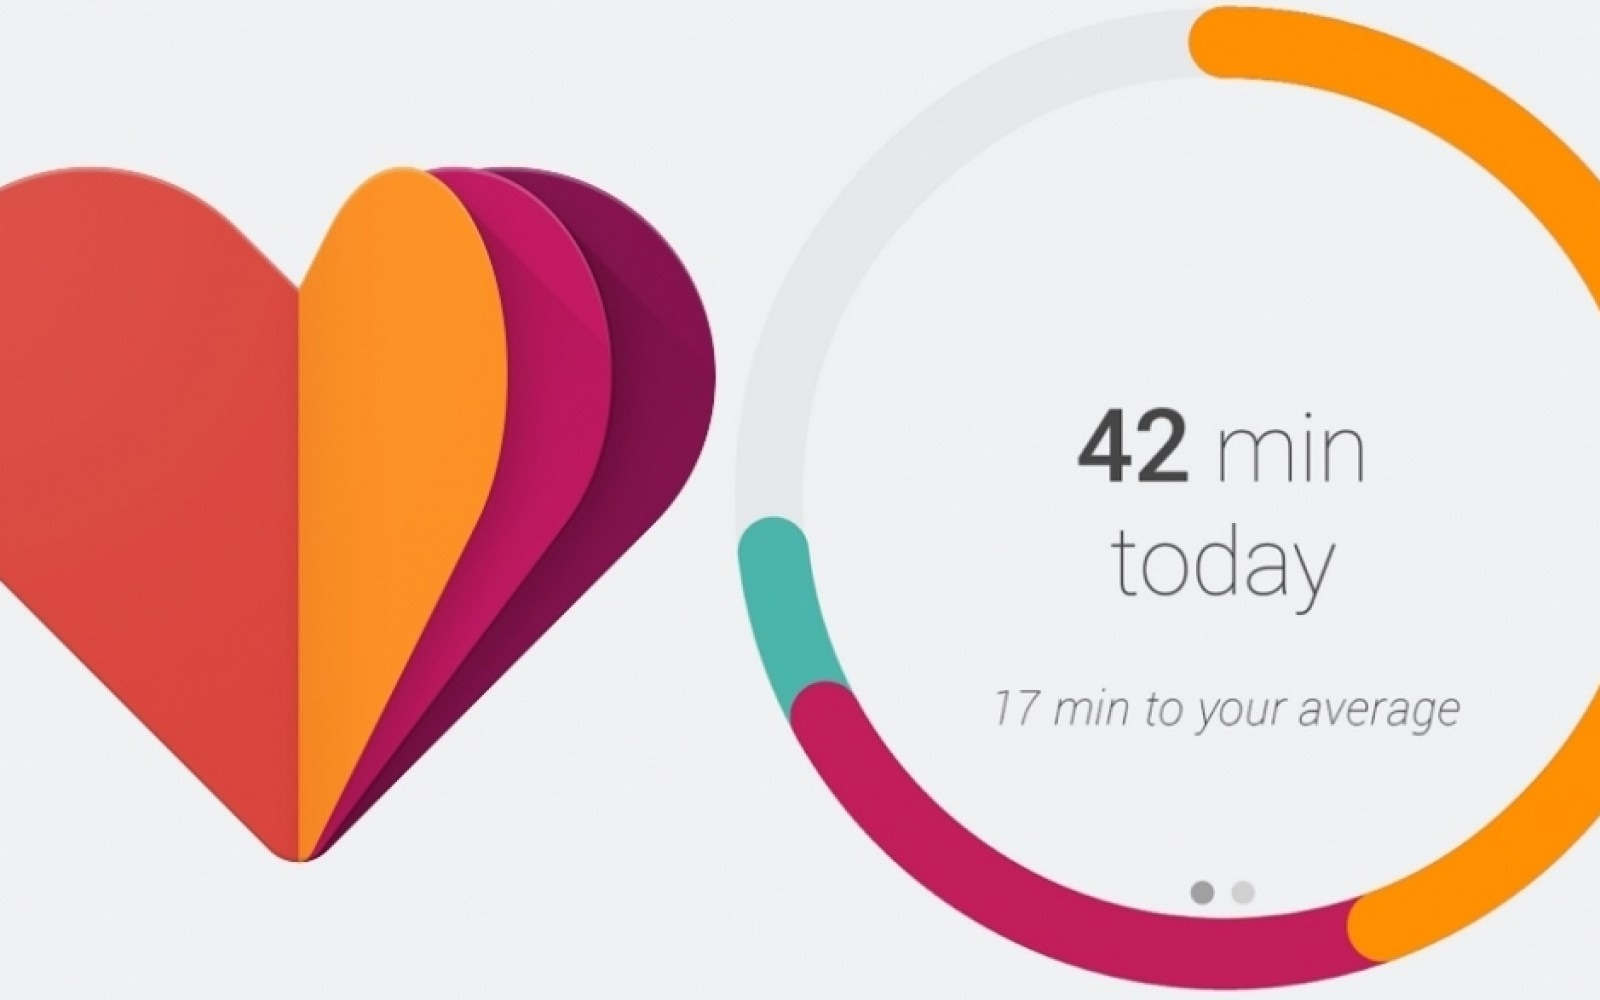 Google Fit update lets you track your exercise from Android Wear